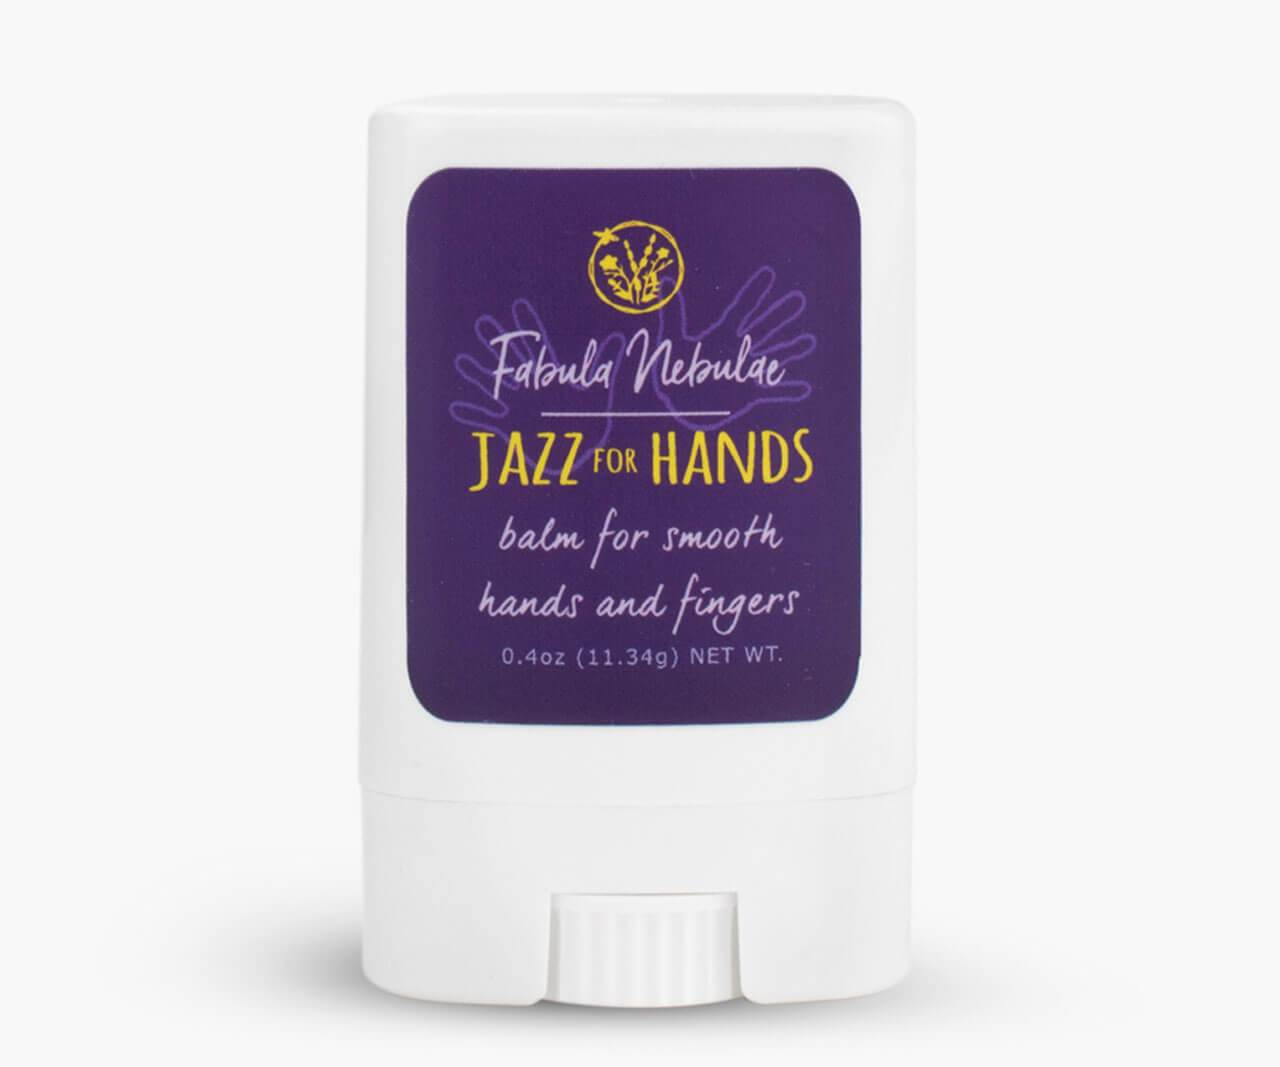 Jazz for Hands balm for smooth hands and fingers 0.4oz